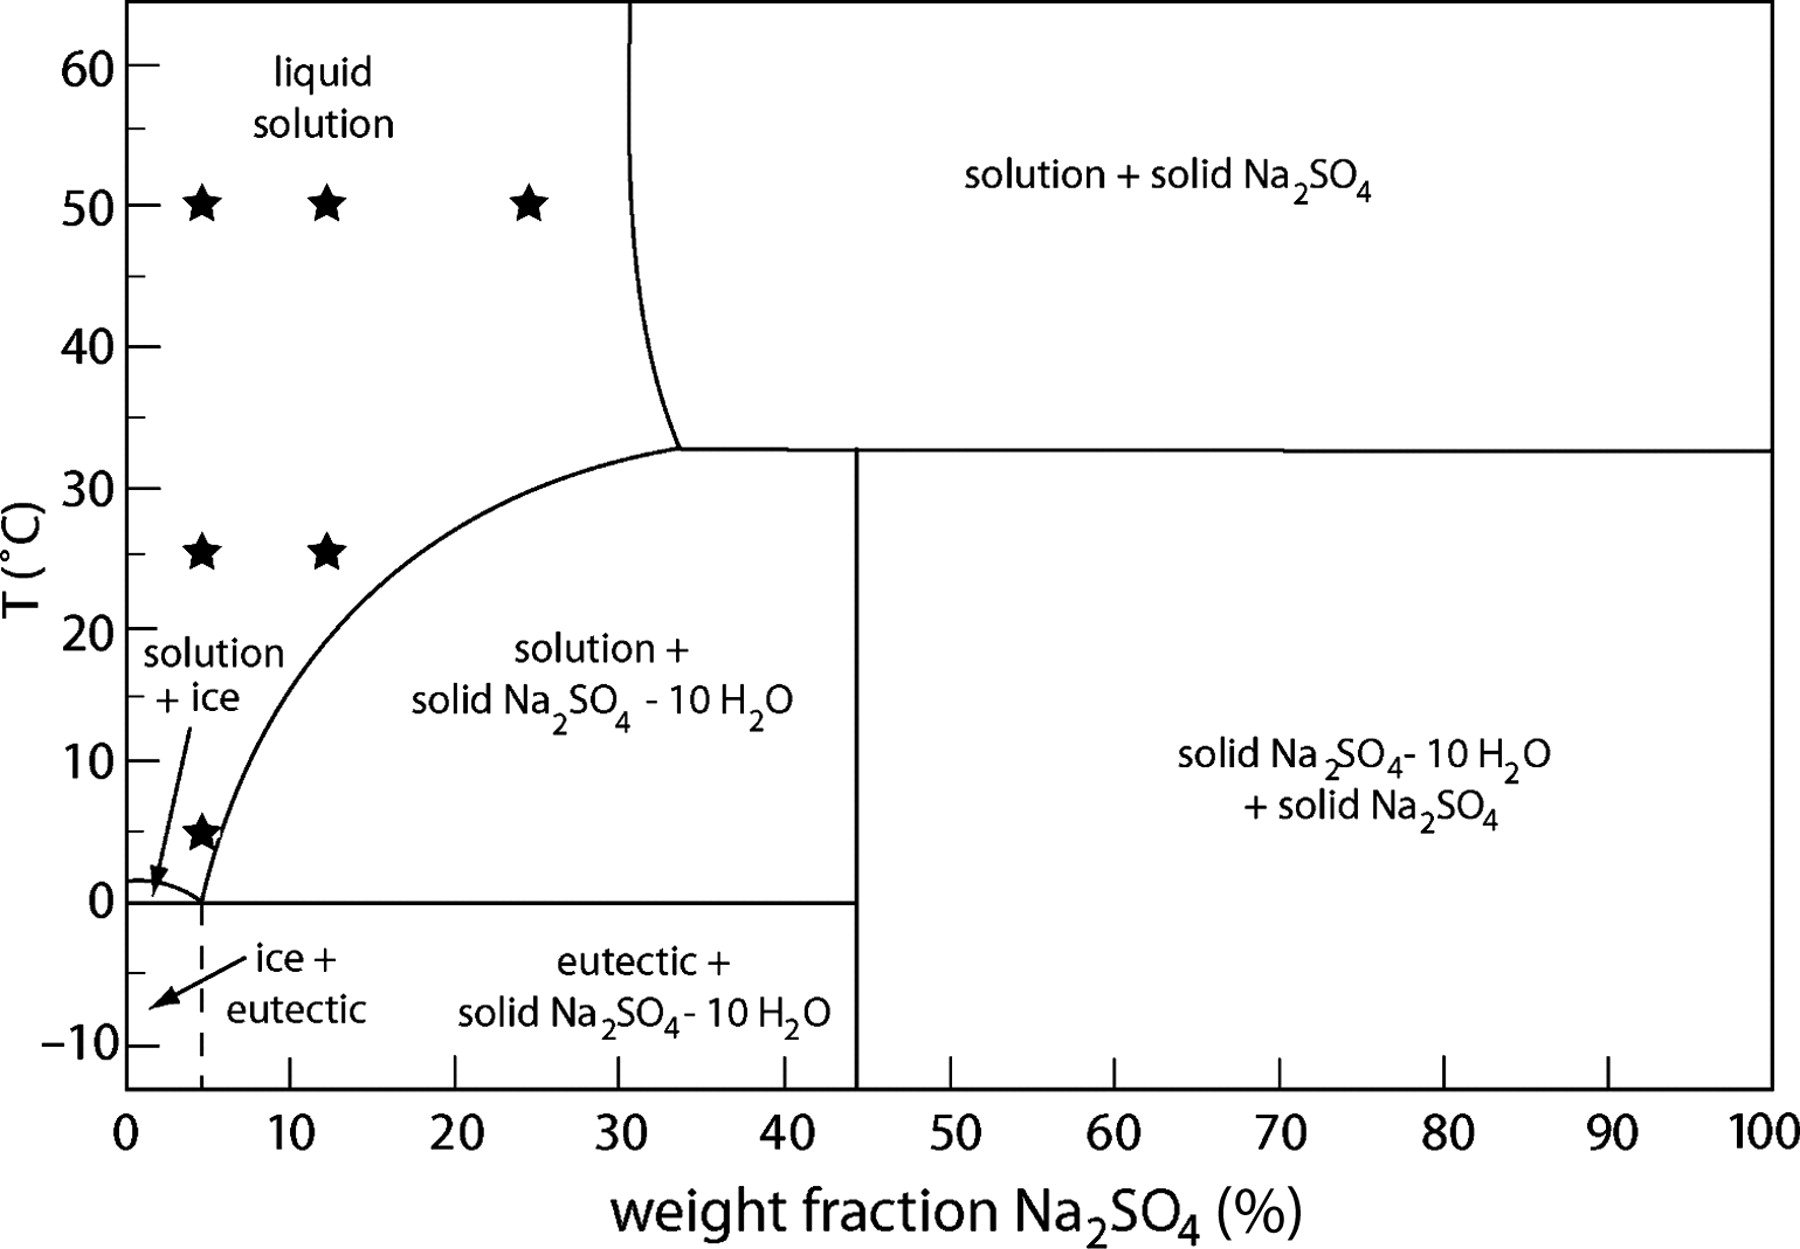 Why Does Sodium Sulfate Have An Unusual Solubility